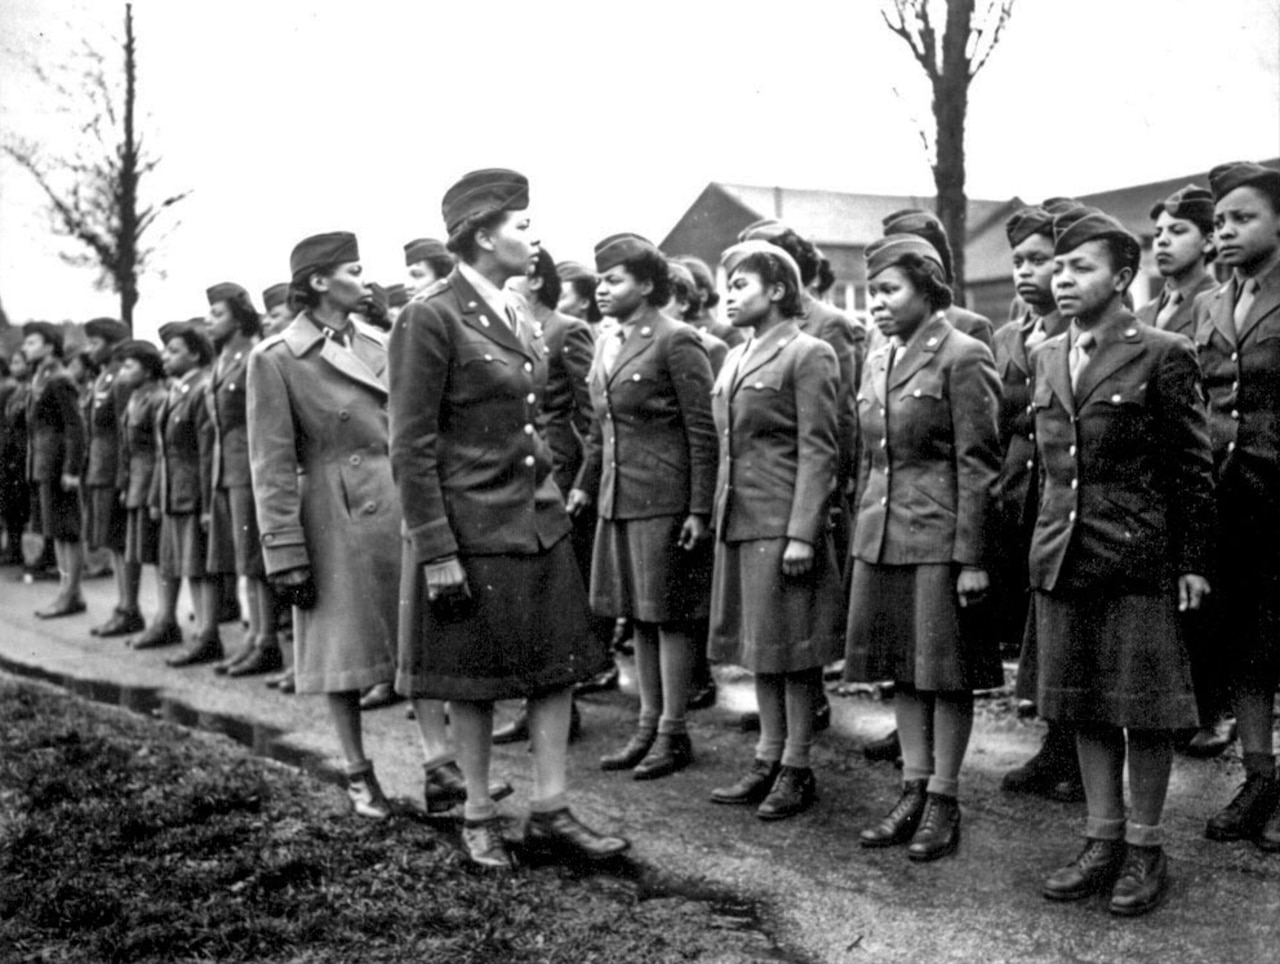 Women's Army Corps Maj. Charity Adams, 6888th Central Postal Directory Battalion commander, and Army Capt. Abbie Noel Campbell, 6888th CPD executive officer, inspect the first soldiers from the unit to arrive in England, Feb. 15, 1945. The only all-African-American Women's Army Corps unit sent to Europe during World War II, the 6888th was responsible for clearing years' worth of backlogged mail in both England and France. National Archives photo